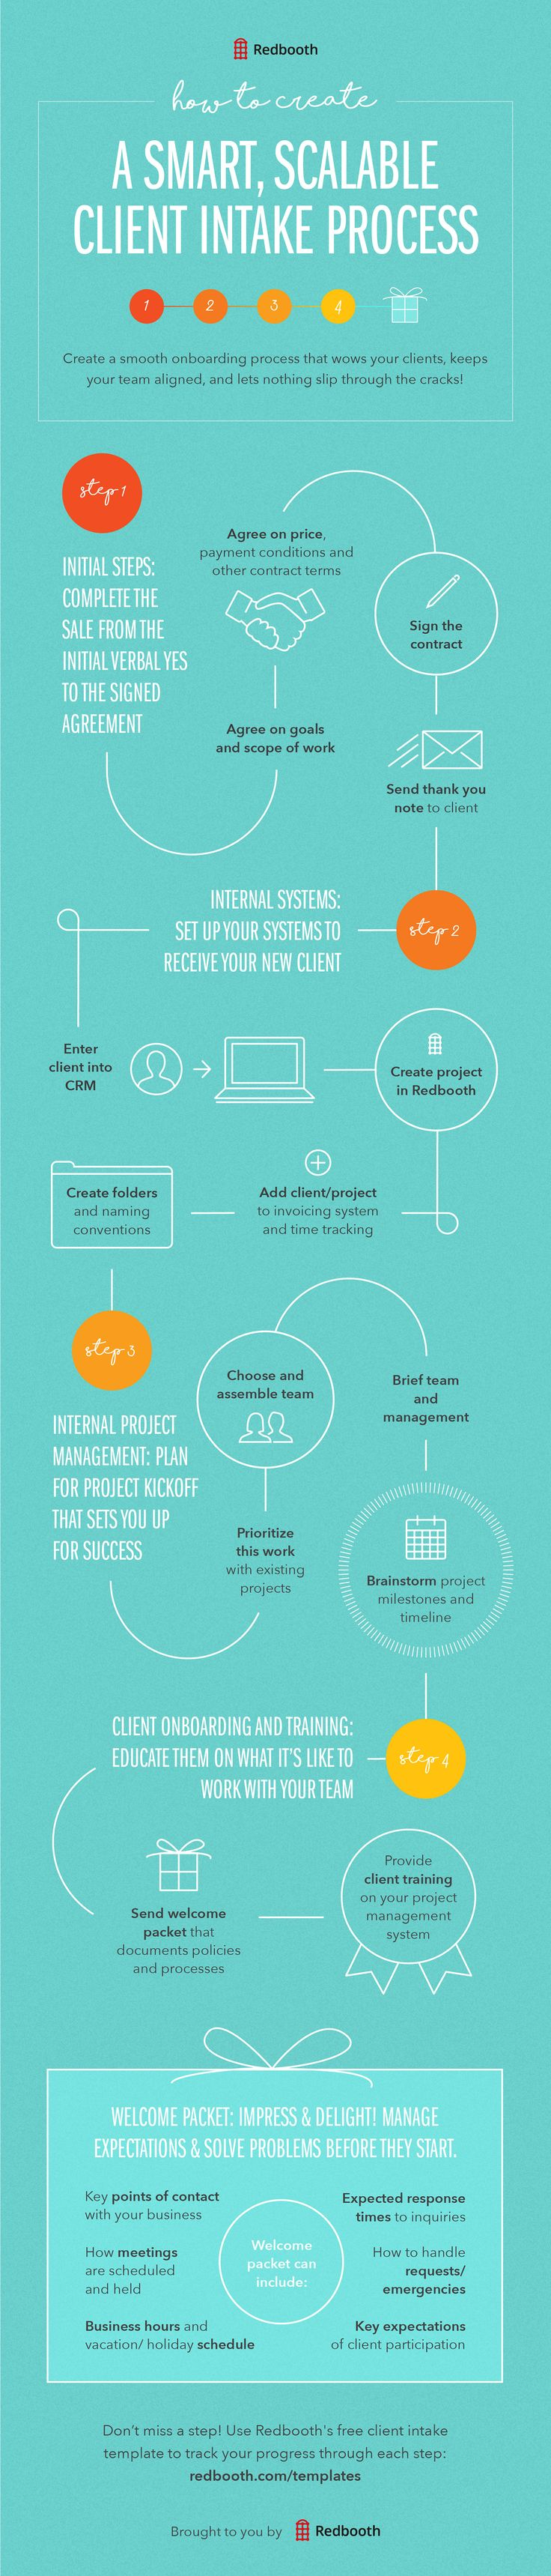 Make all of your new clients feel welcome and get them up to speed fast! This client intake infographic walks you through the process from start to finish.